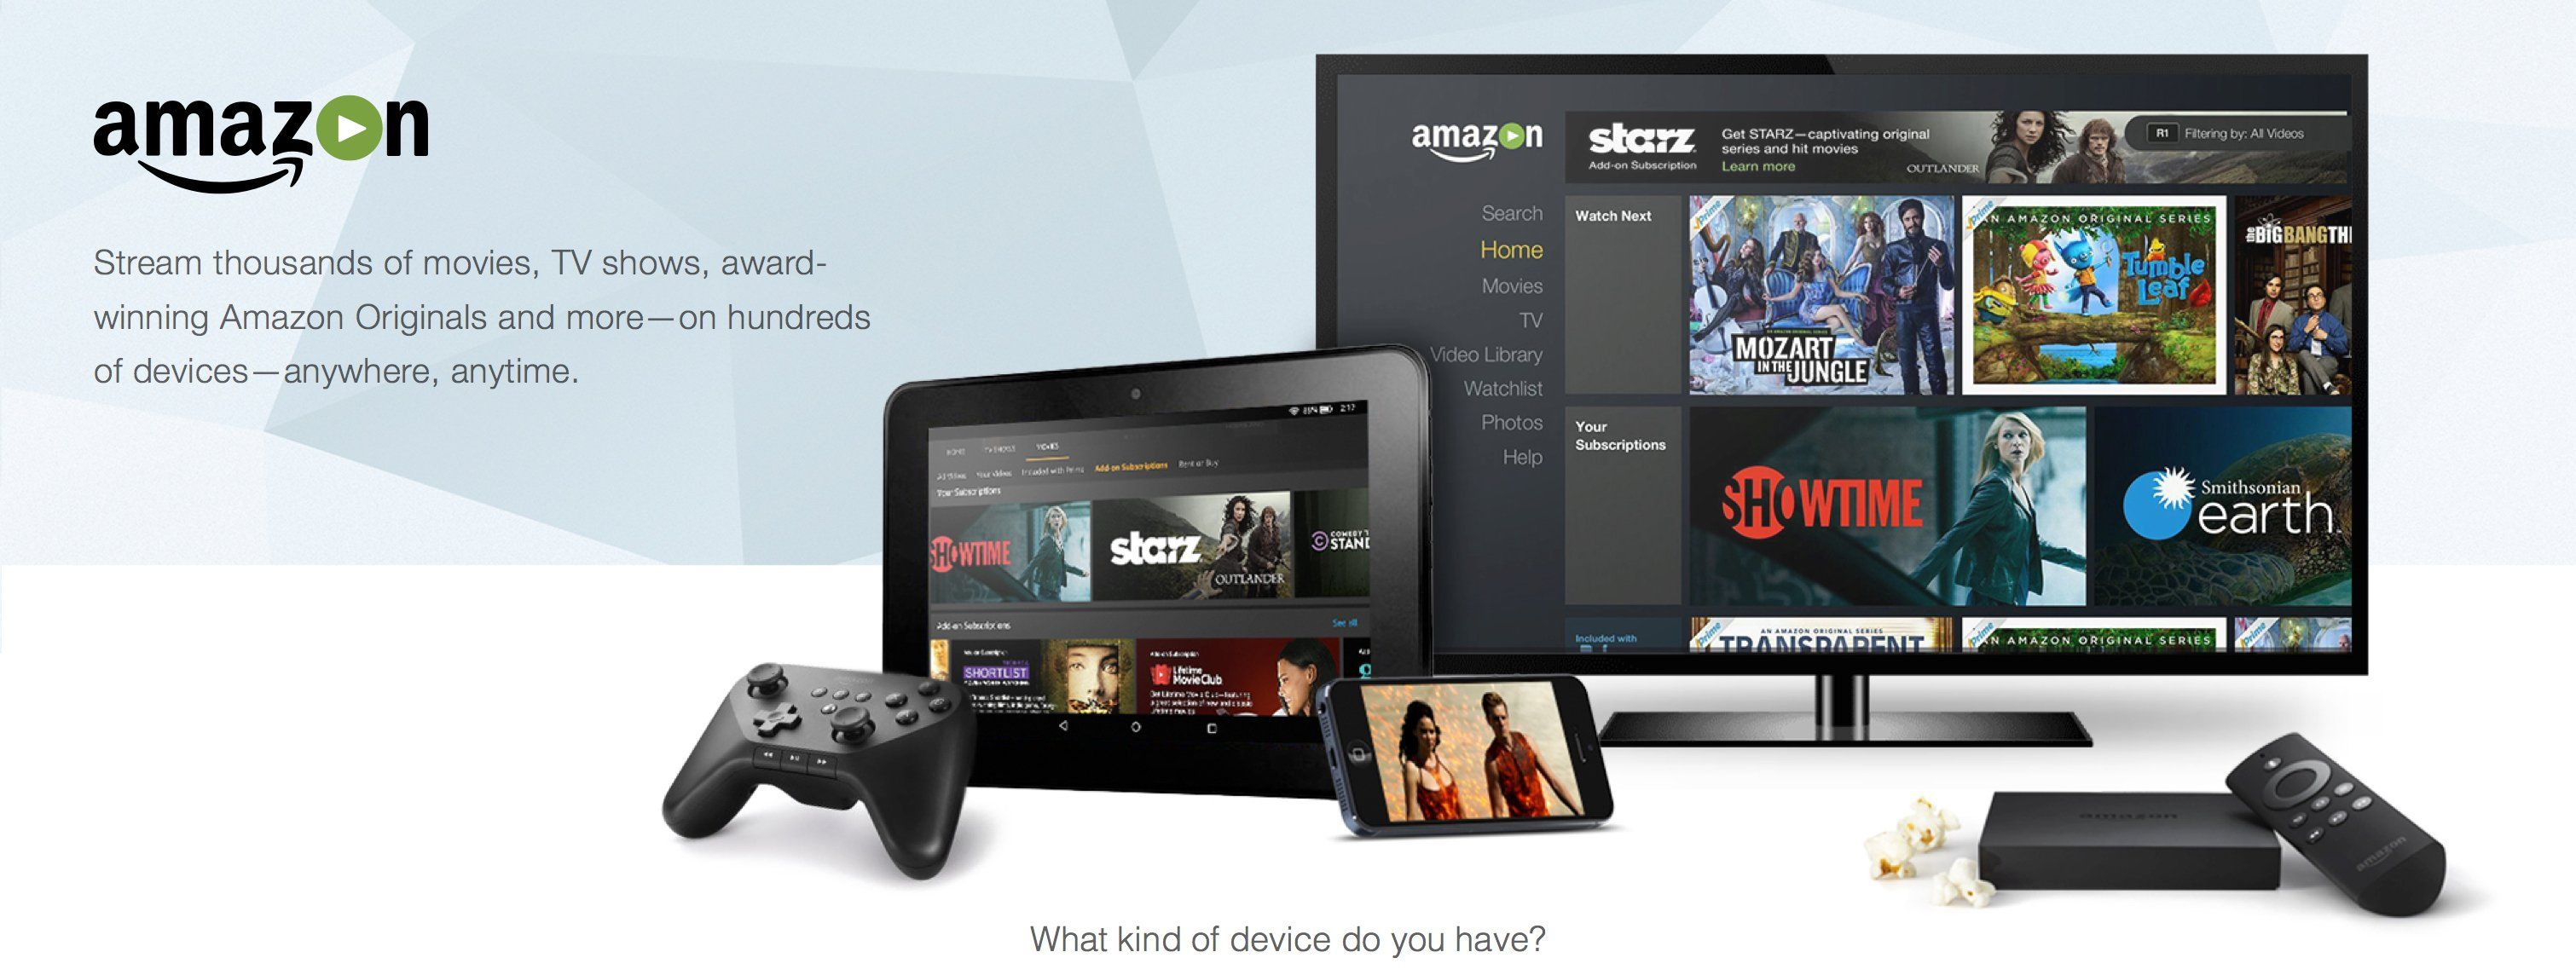 Research Amazon Devices That Will Help Improve Your Media Pleasure